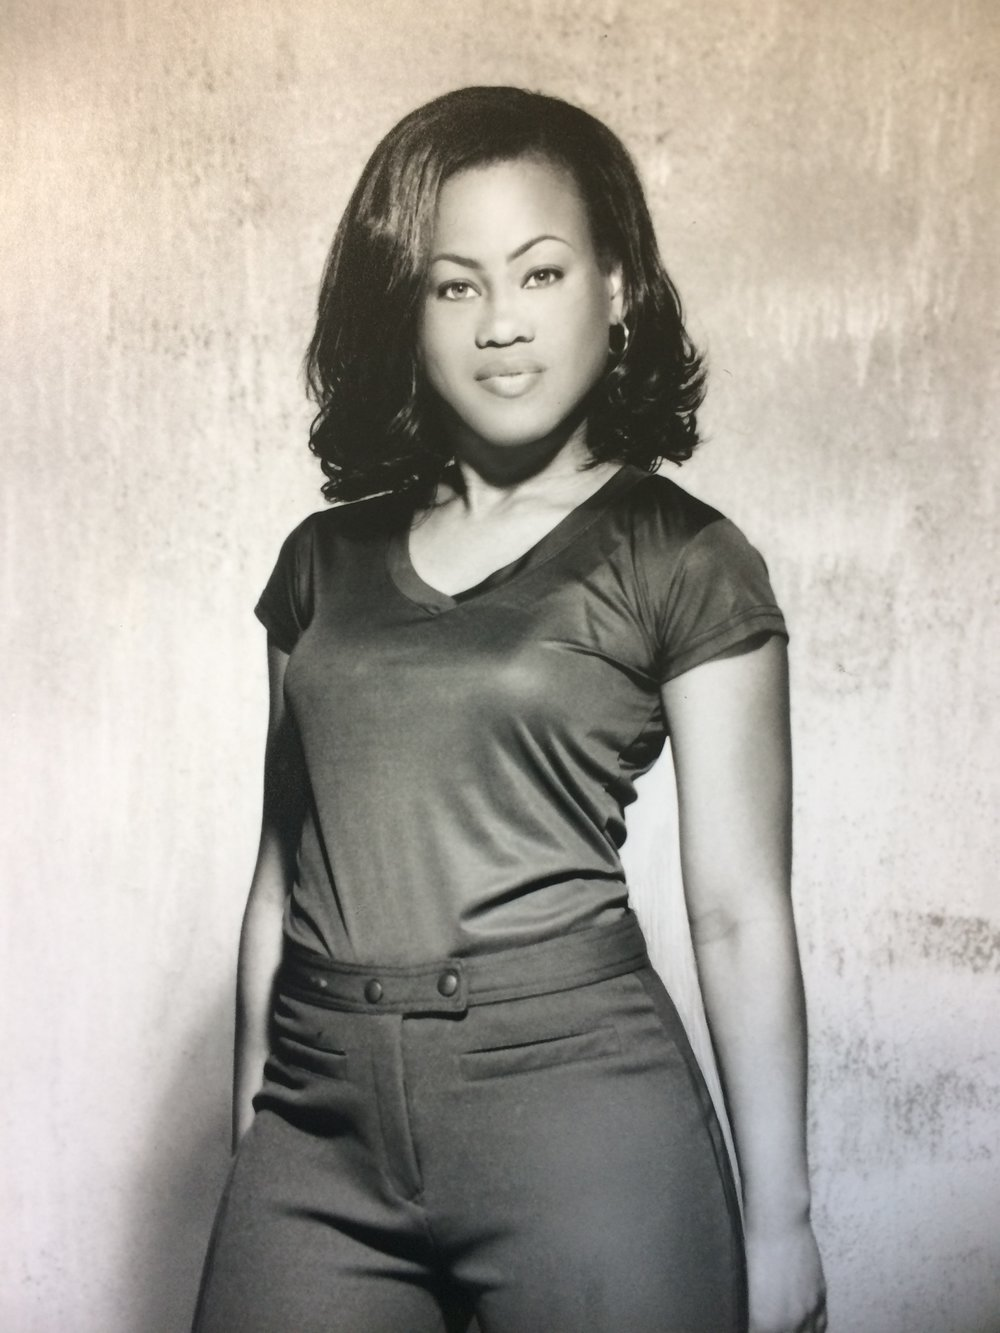 faculty newark school of the arts leslie lucy hip hop a gifted dancer and choreographer bred in south jersey leslie received her training from premier dance theater nj and broadway dance